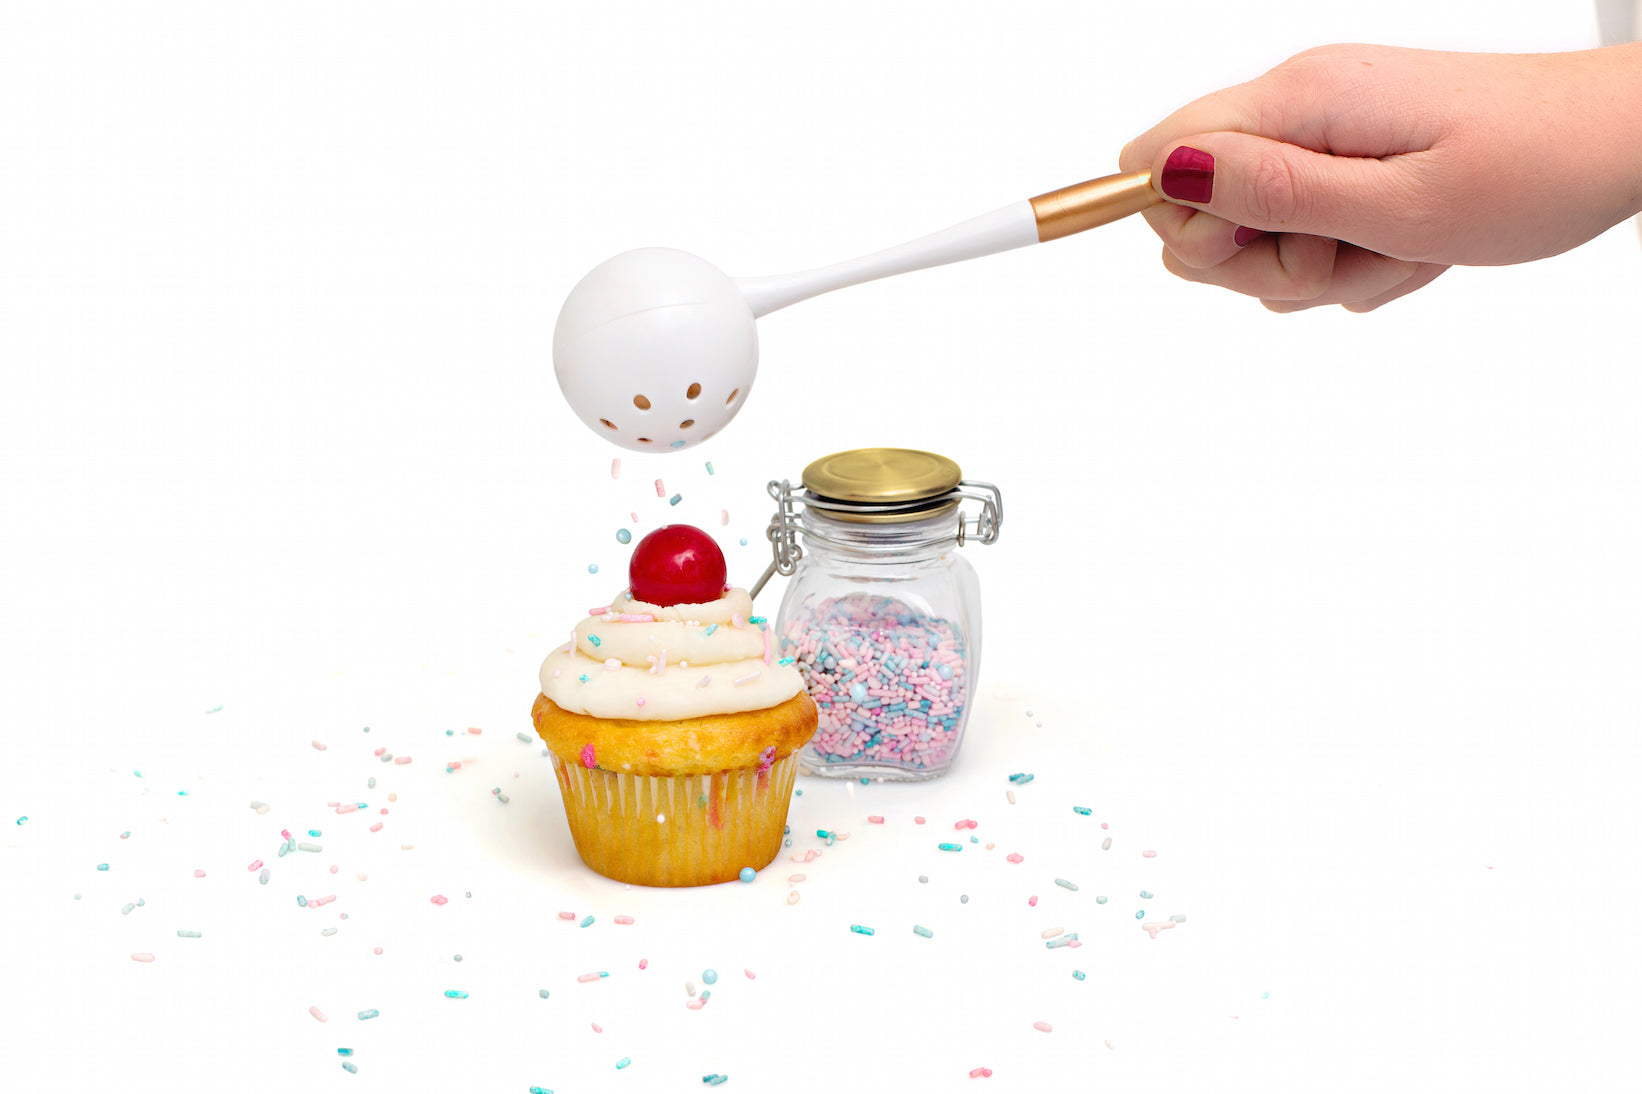 Sprinkle Magic Wand / Varita Mágica de Chispitas